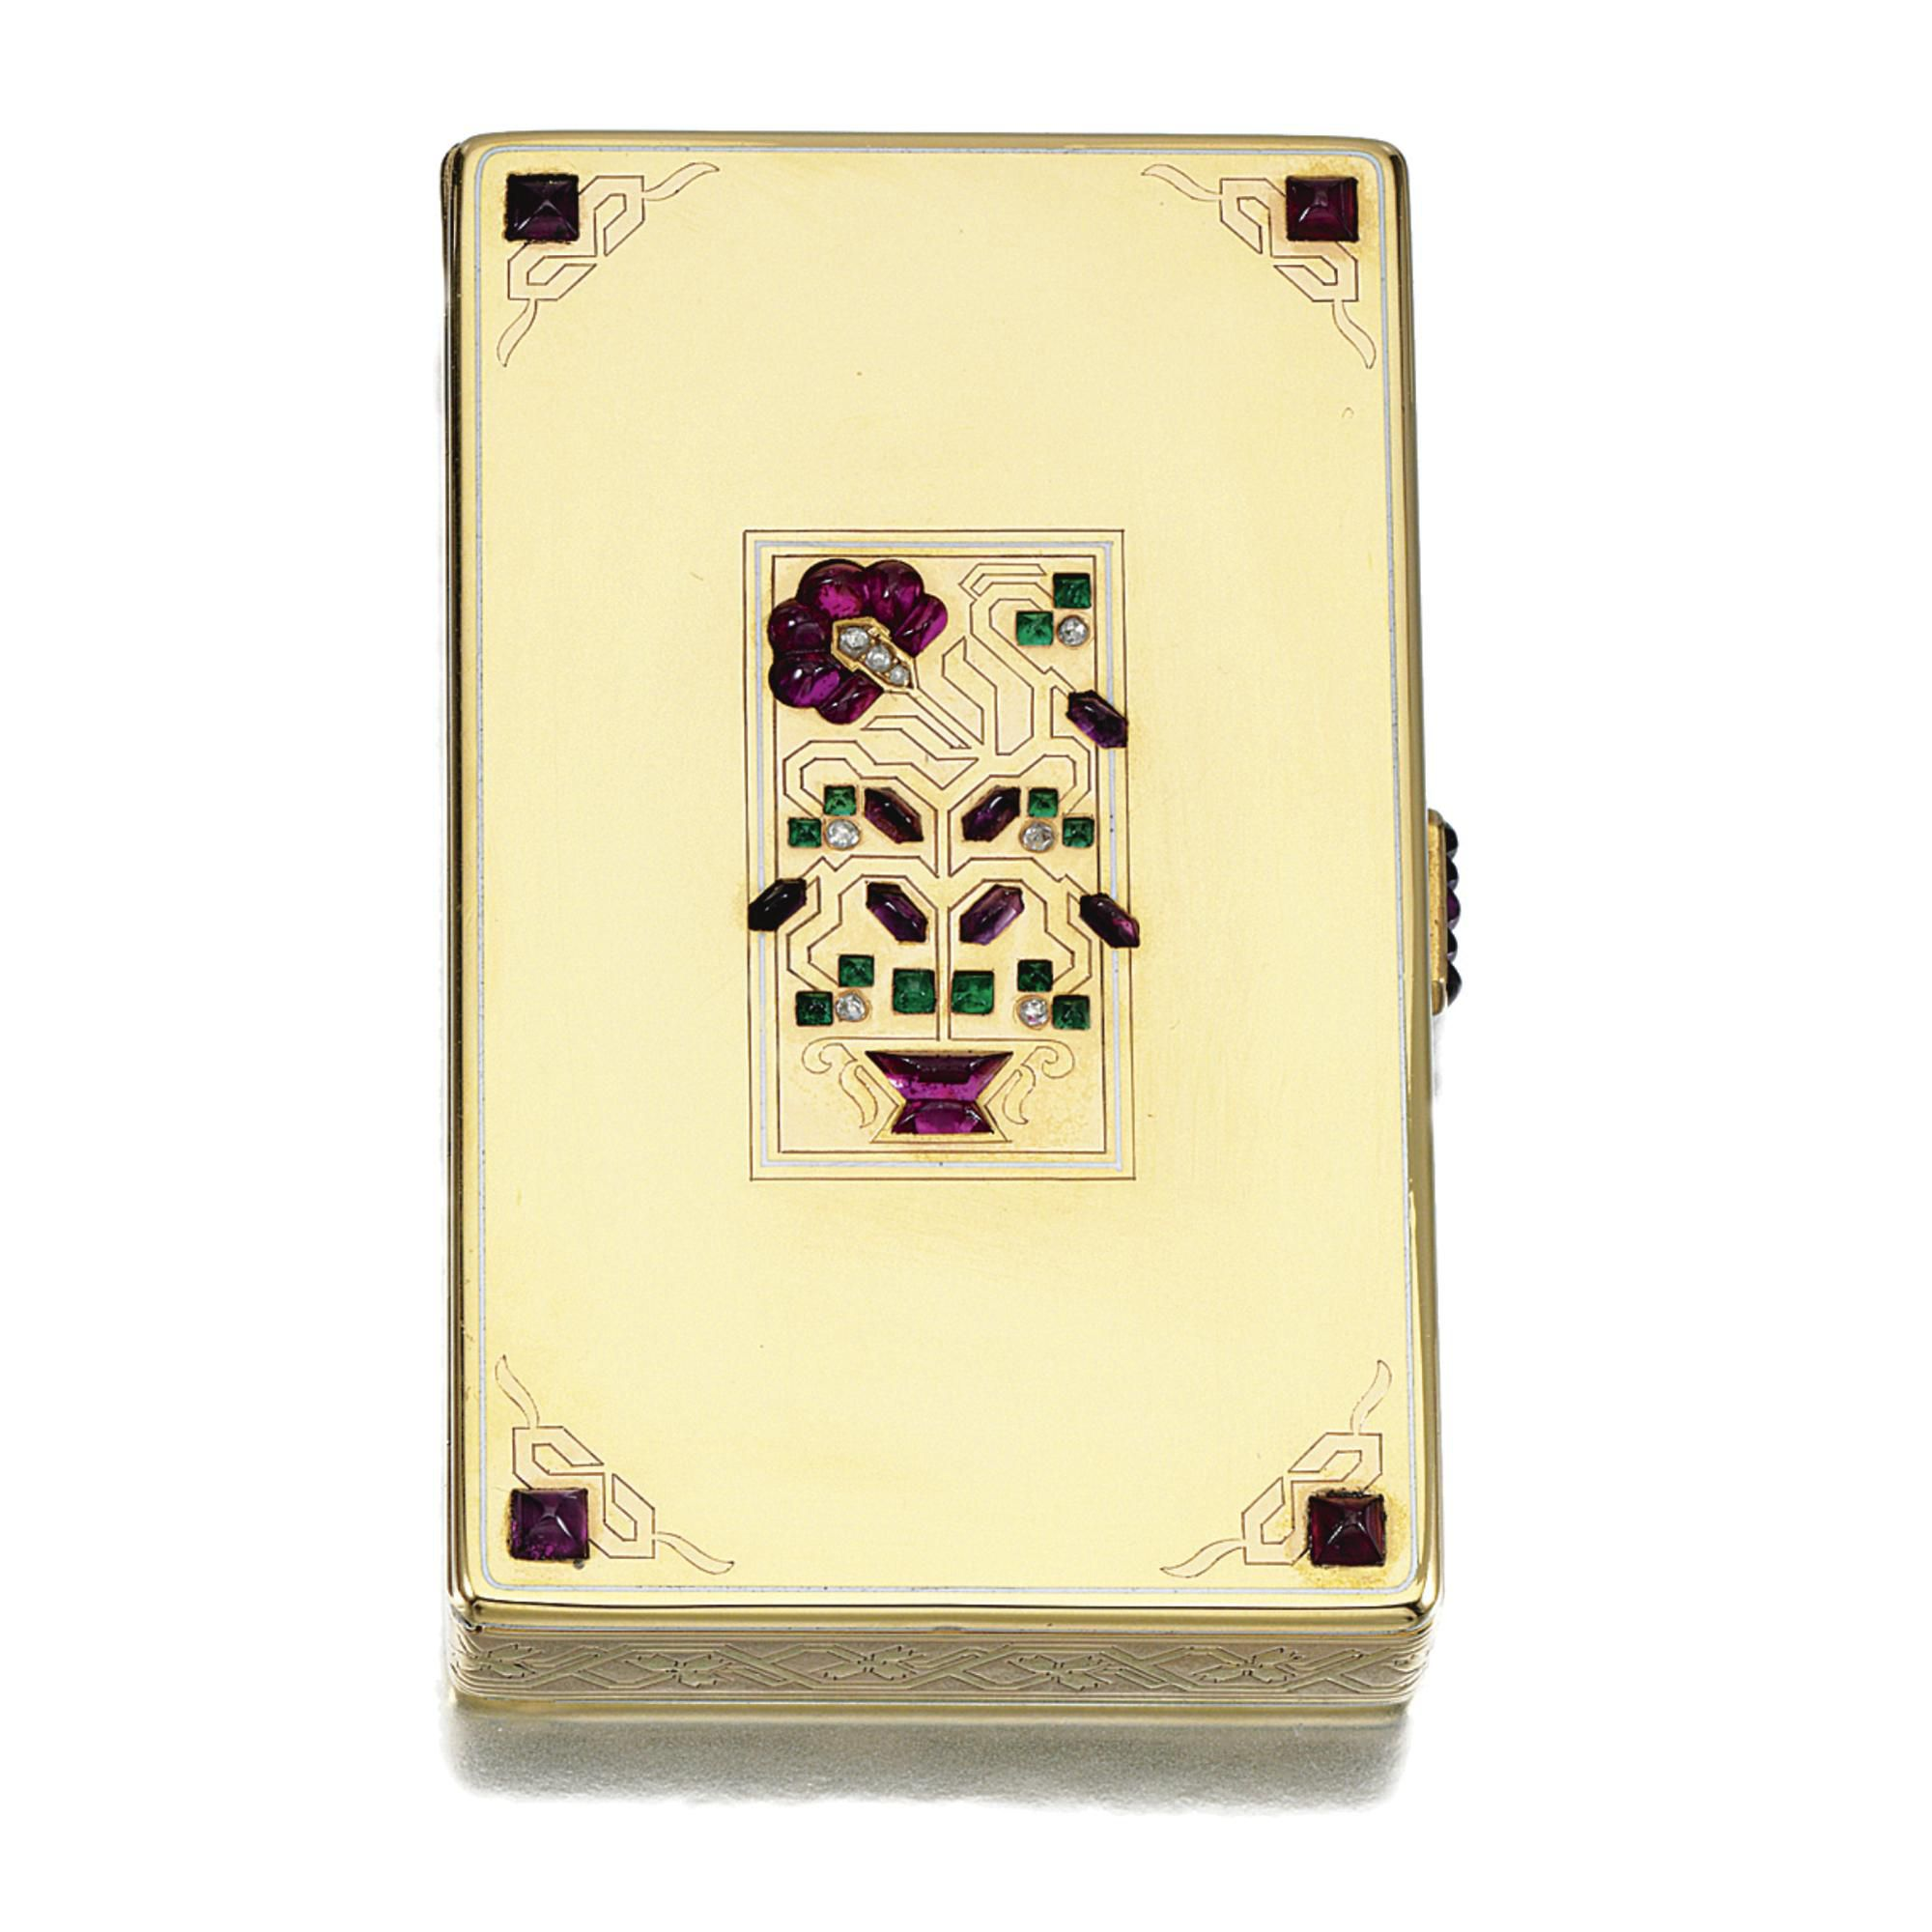 ENAMEL, GEM-SET AND DIAMOND VANITY CASE, CARTIER, 1920S The rectangular case pierced and inset to the centre and corners with cabochon amethysts, rubies and emeralds, highlighted with rose-cut diamonds, decorated with white enamel lines, engraved with a geometric giardinetti and floral motifs, opening to reveal two lidded compartments and a lipstick, inscribed 'Maeou from Freddie 30th Sept.1938', measuring approximately 82mm x 50mm x 13mm, signed Cartier